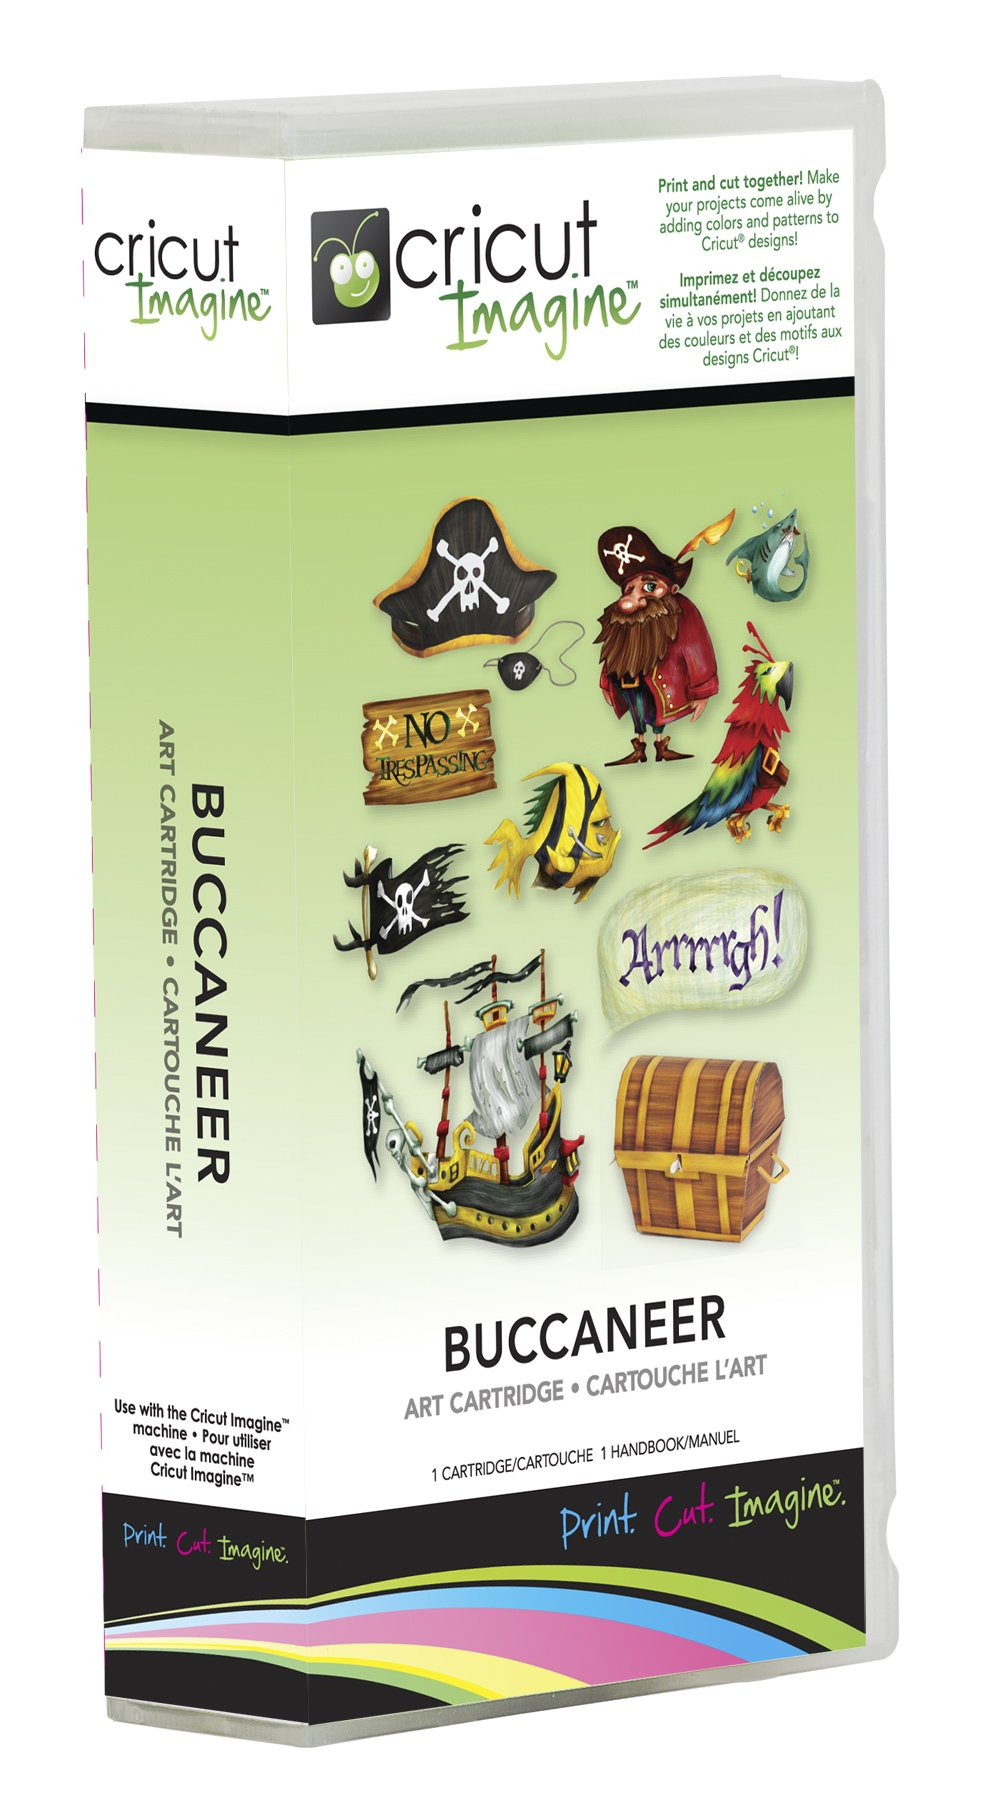 Cricut 2001036 Imagine Art Cartridge, Buccaneer